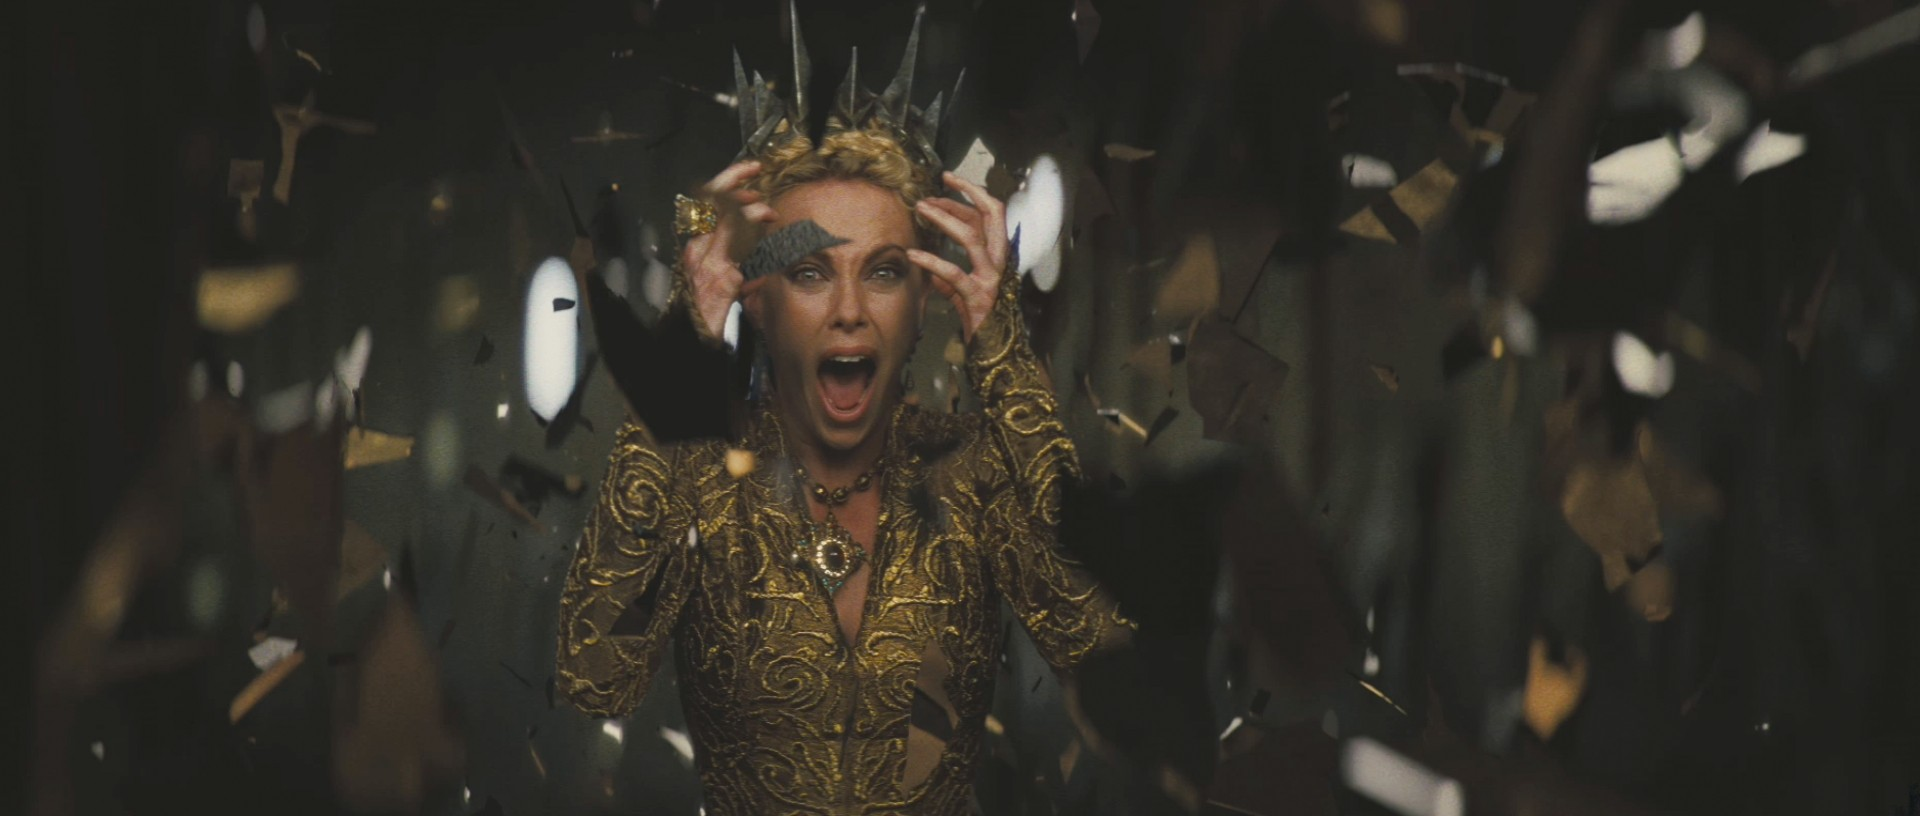 charlize-theron-as-the-evil-queen-in-snow